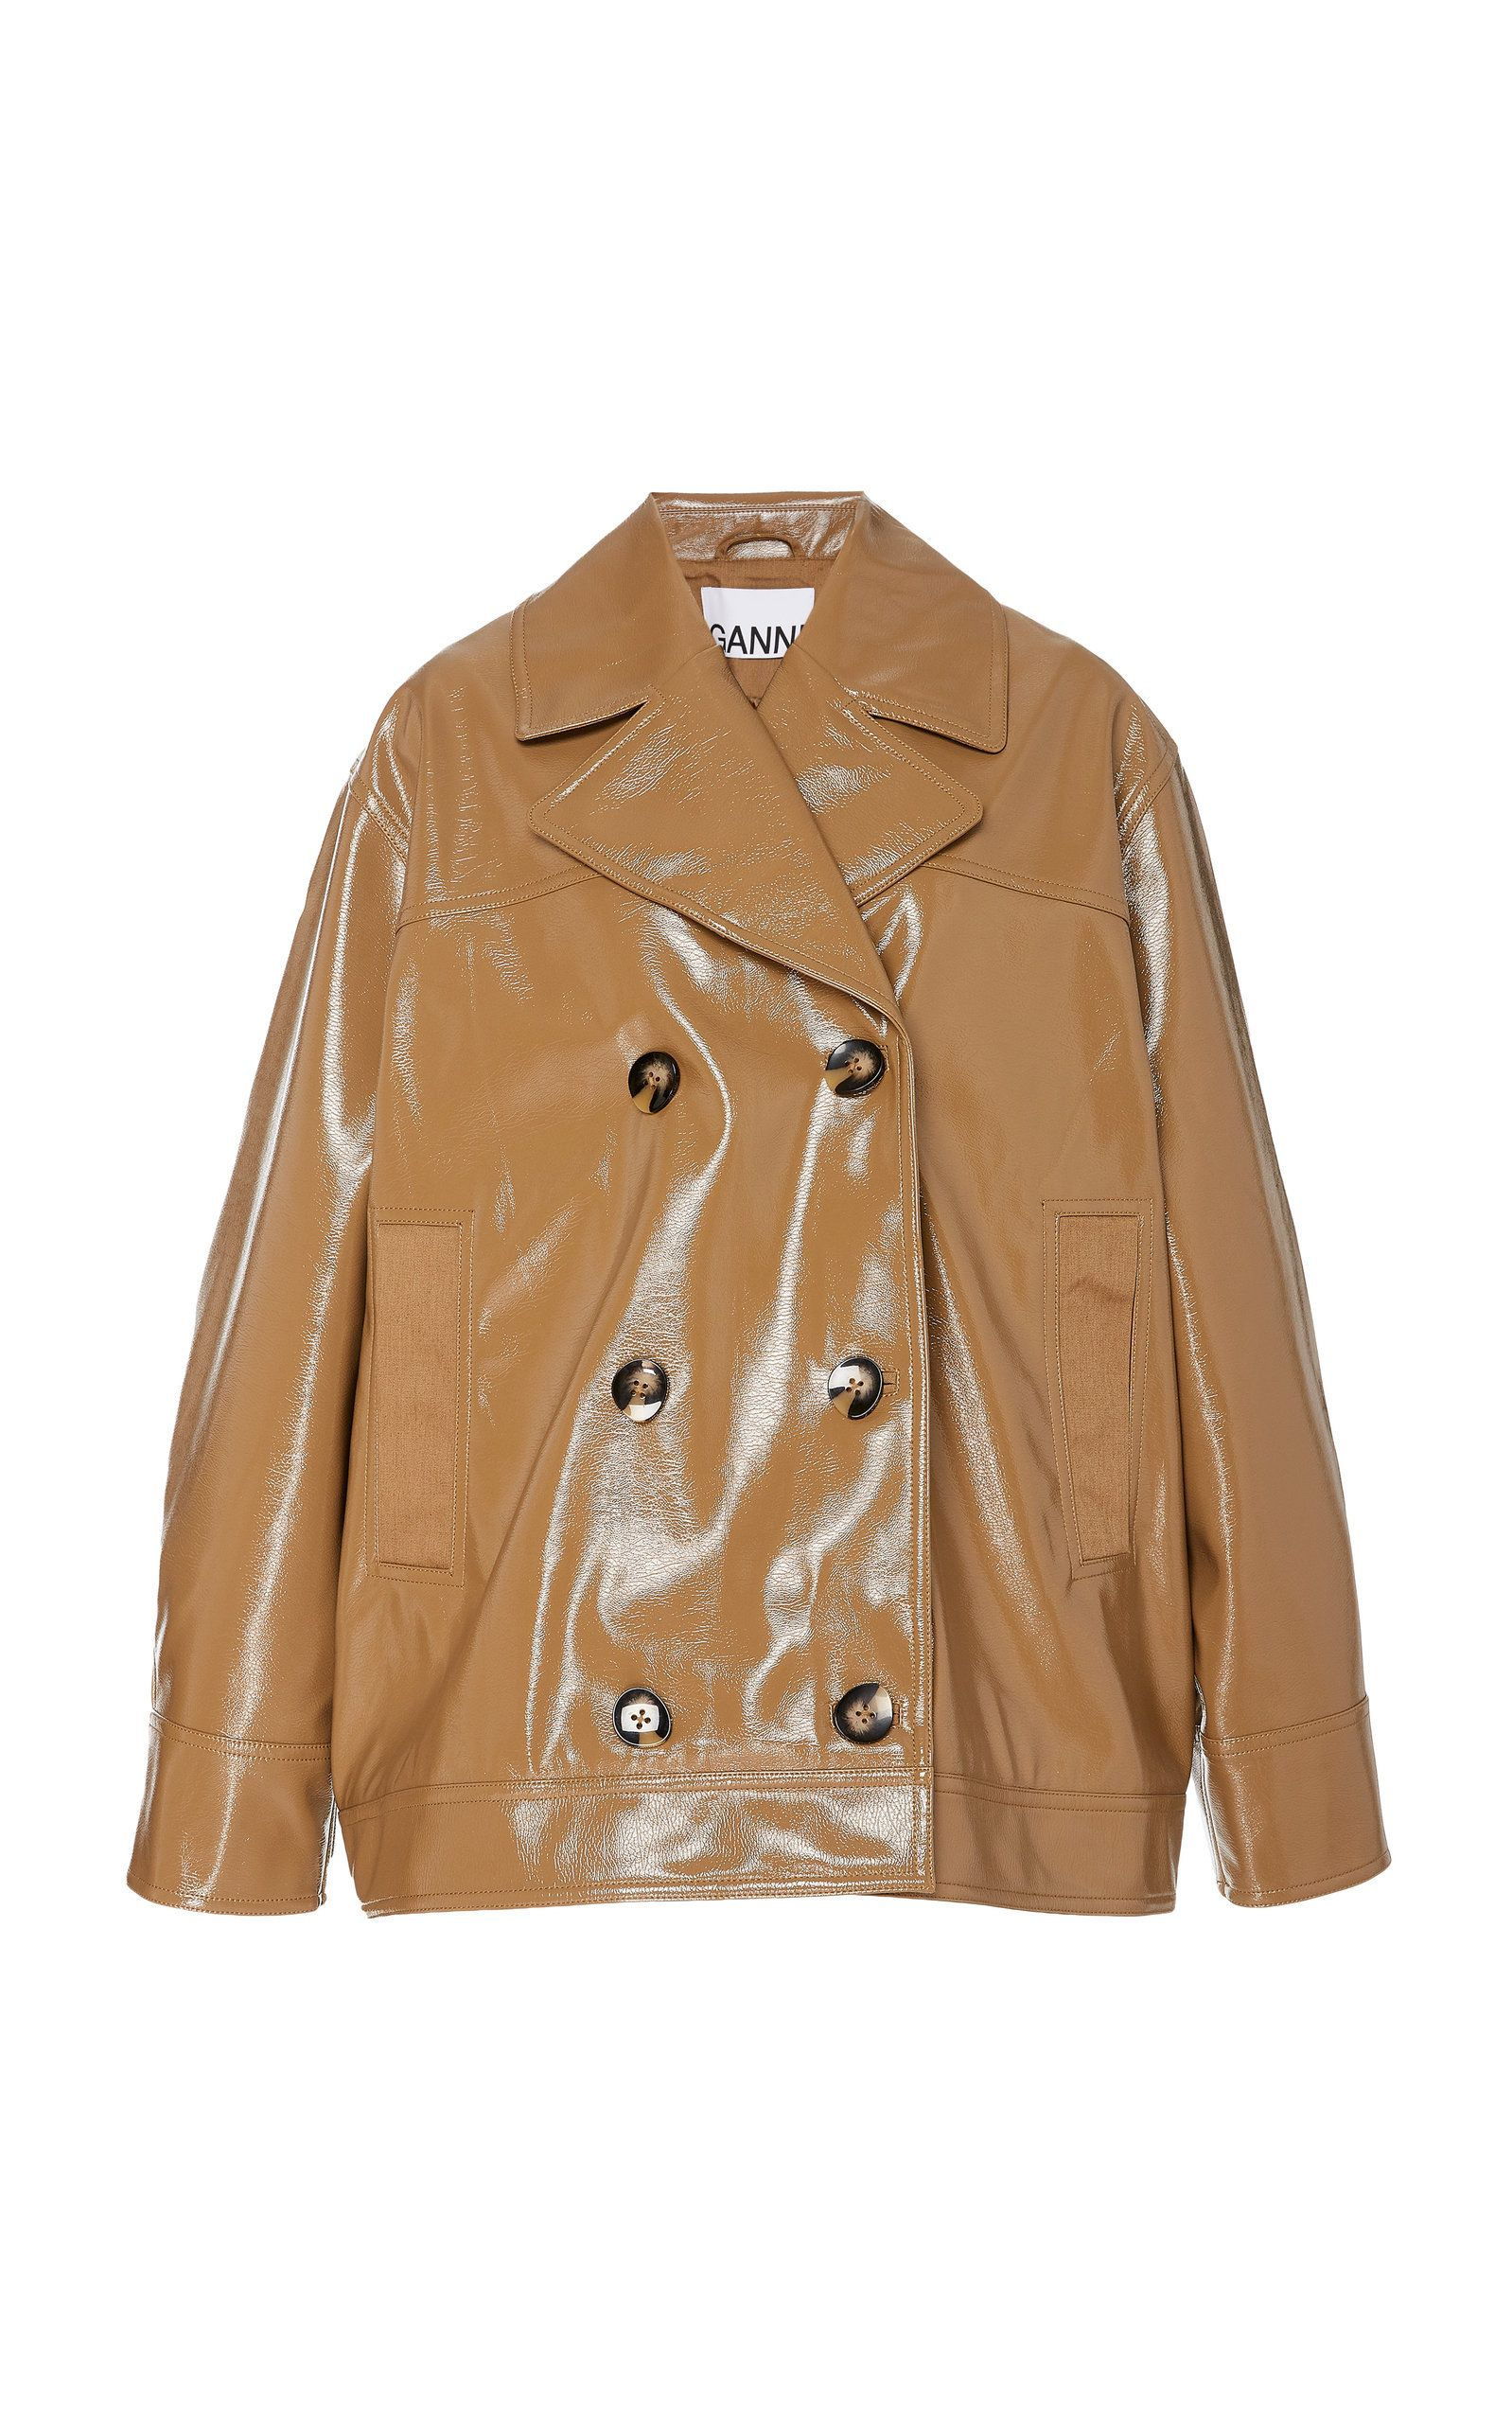 8accfae2 15 Best Leather Jackets For Women 2019 - Leather Jackets at Every Price  Point